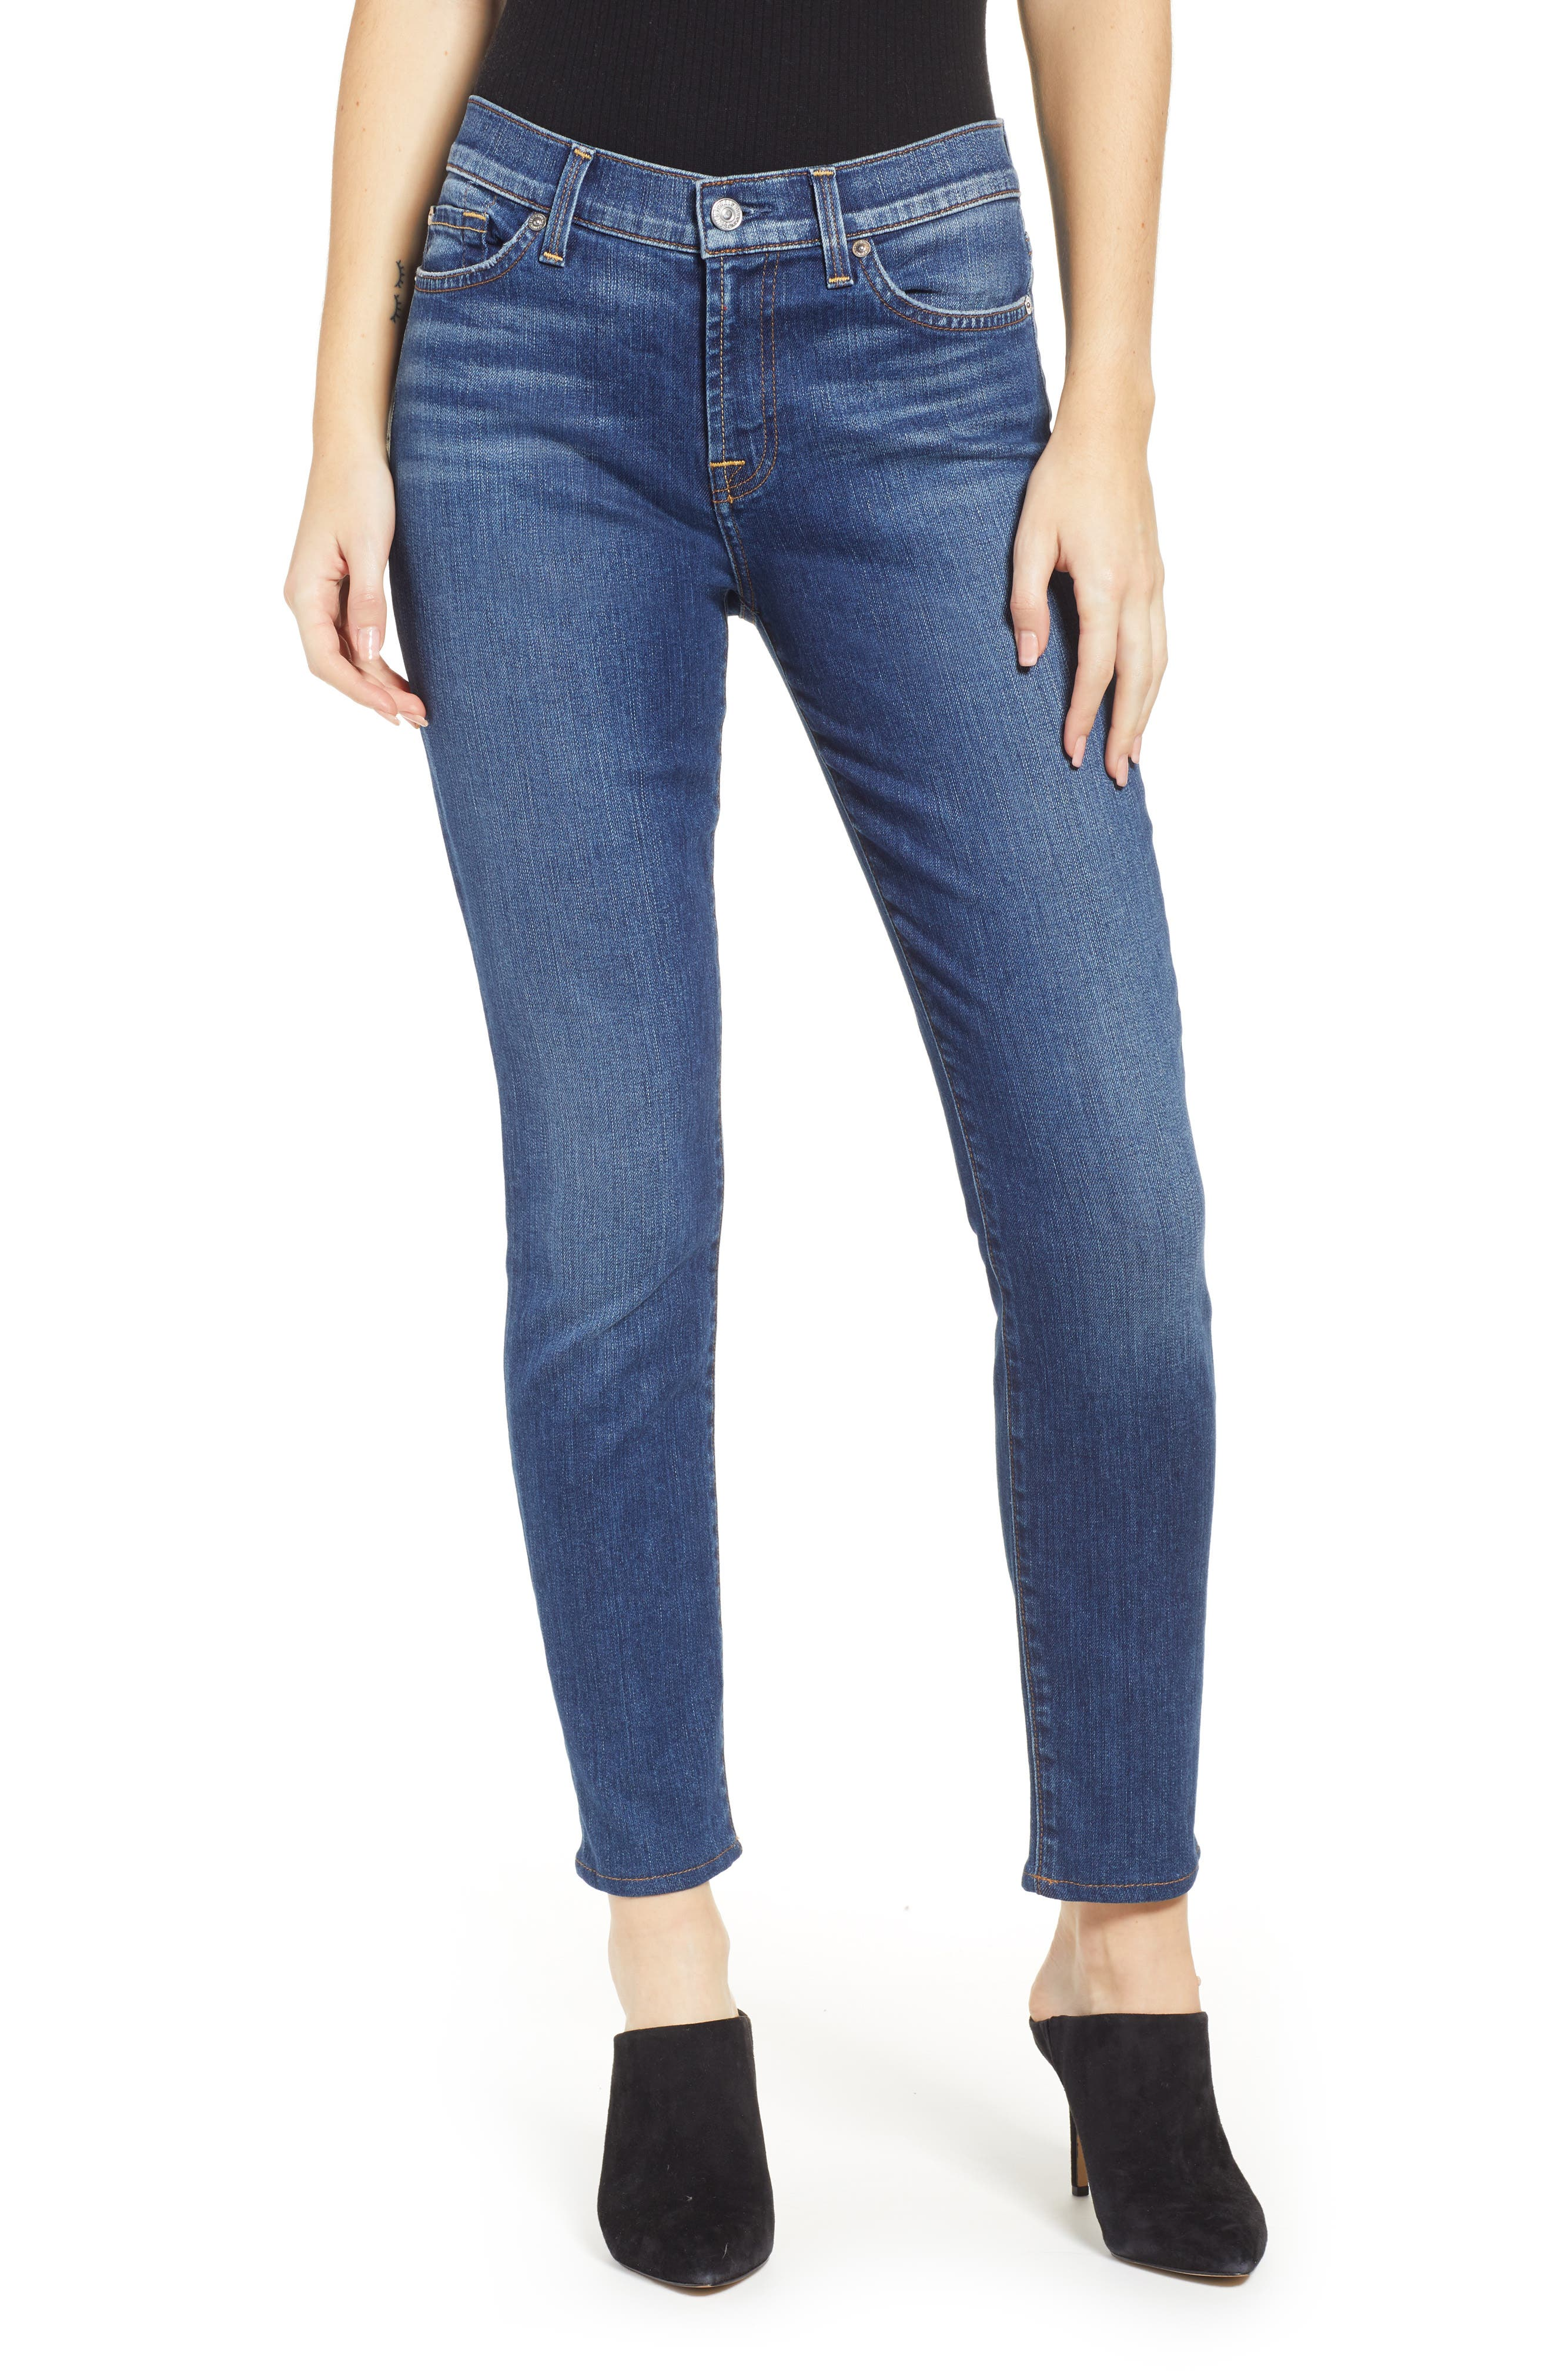 7 FOR ALL MANKIND<SUP>®</SUP>, The Ankle Skinny Jeans, Main thumbnail 1, color, ALLURING INDIGO